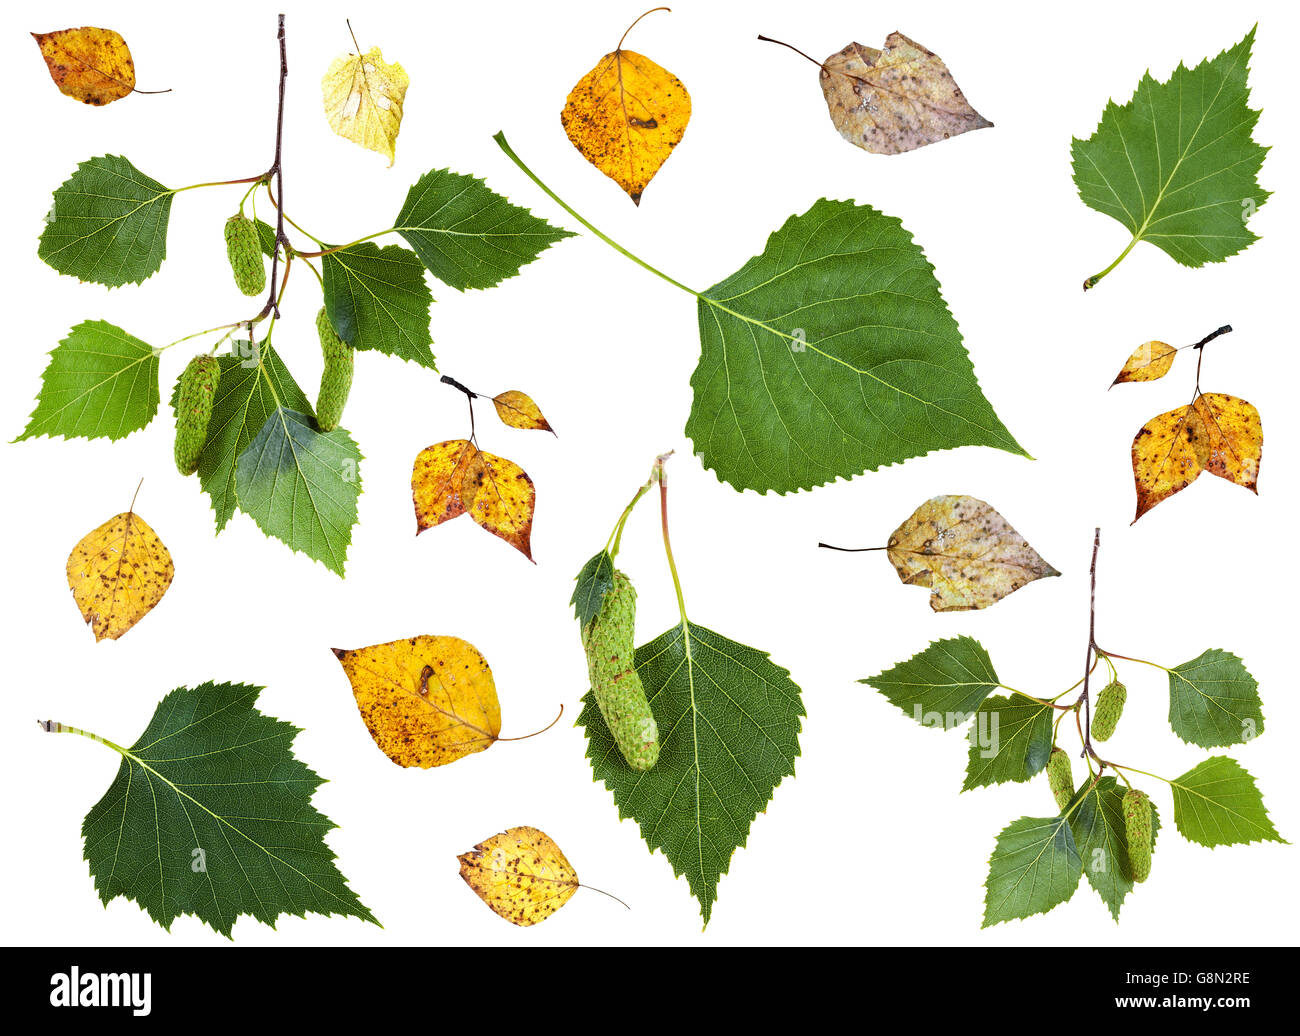 set of summer green and autumn yellow birch leaves isolated on white background - Stock Image